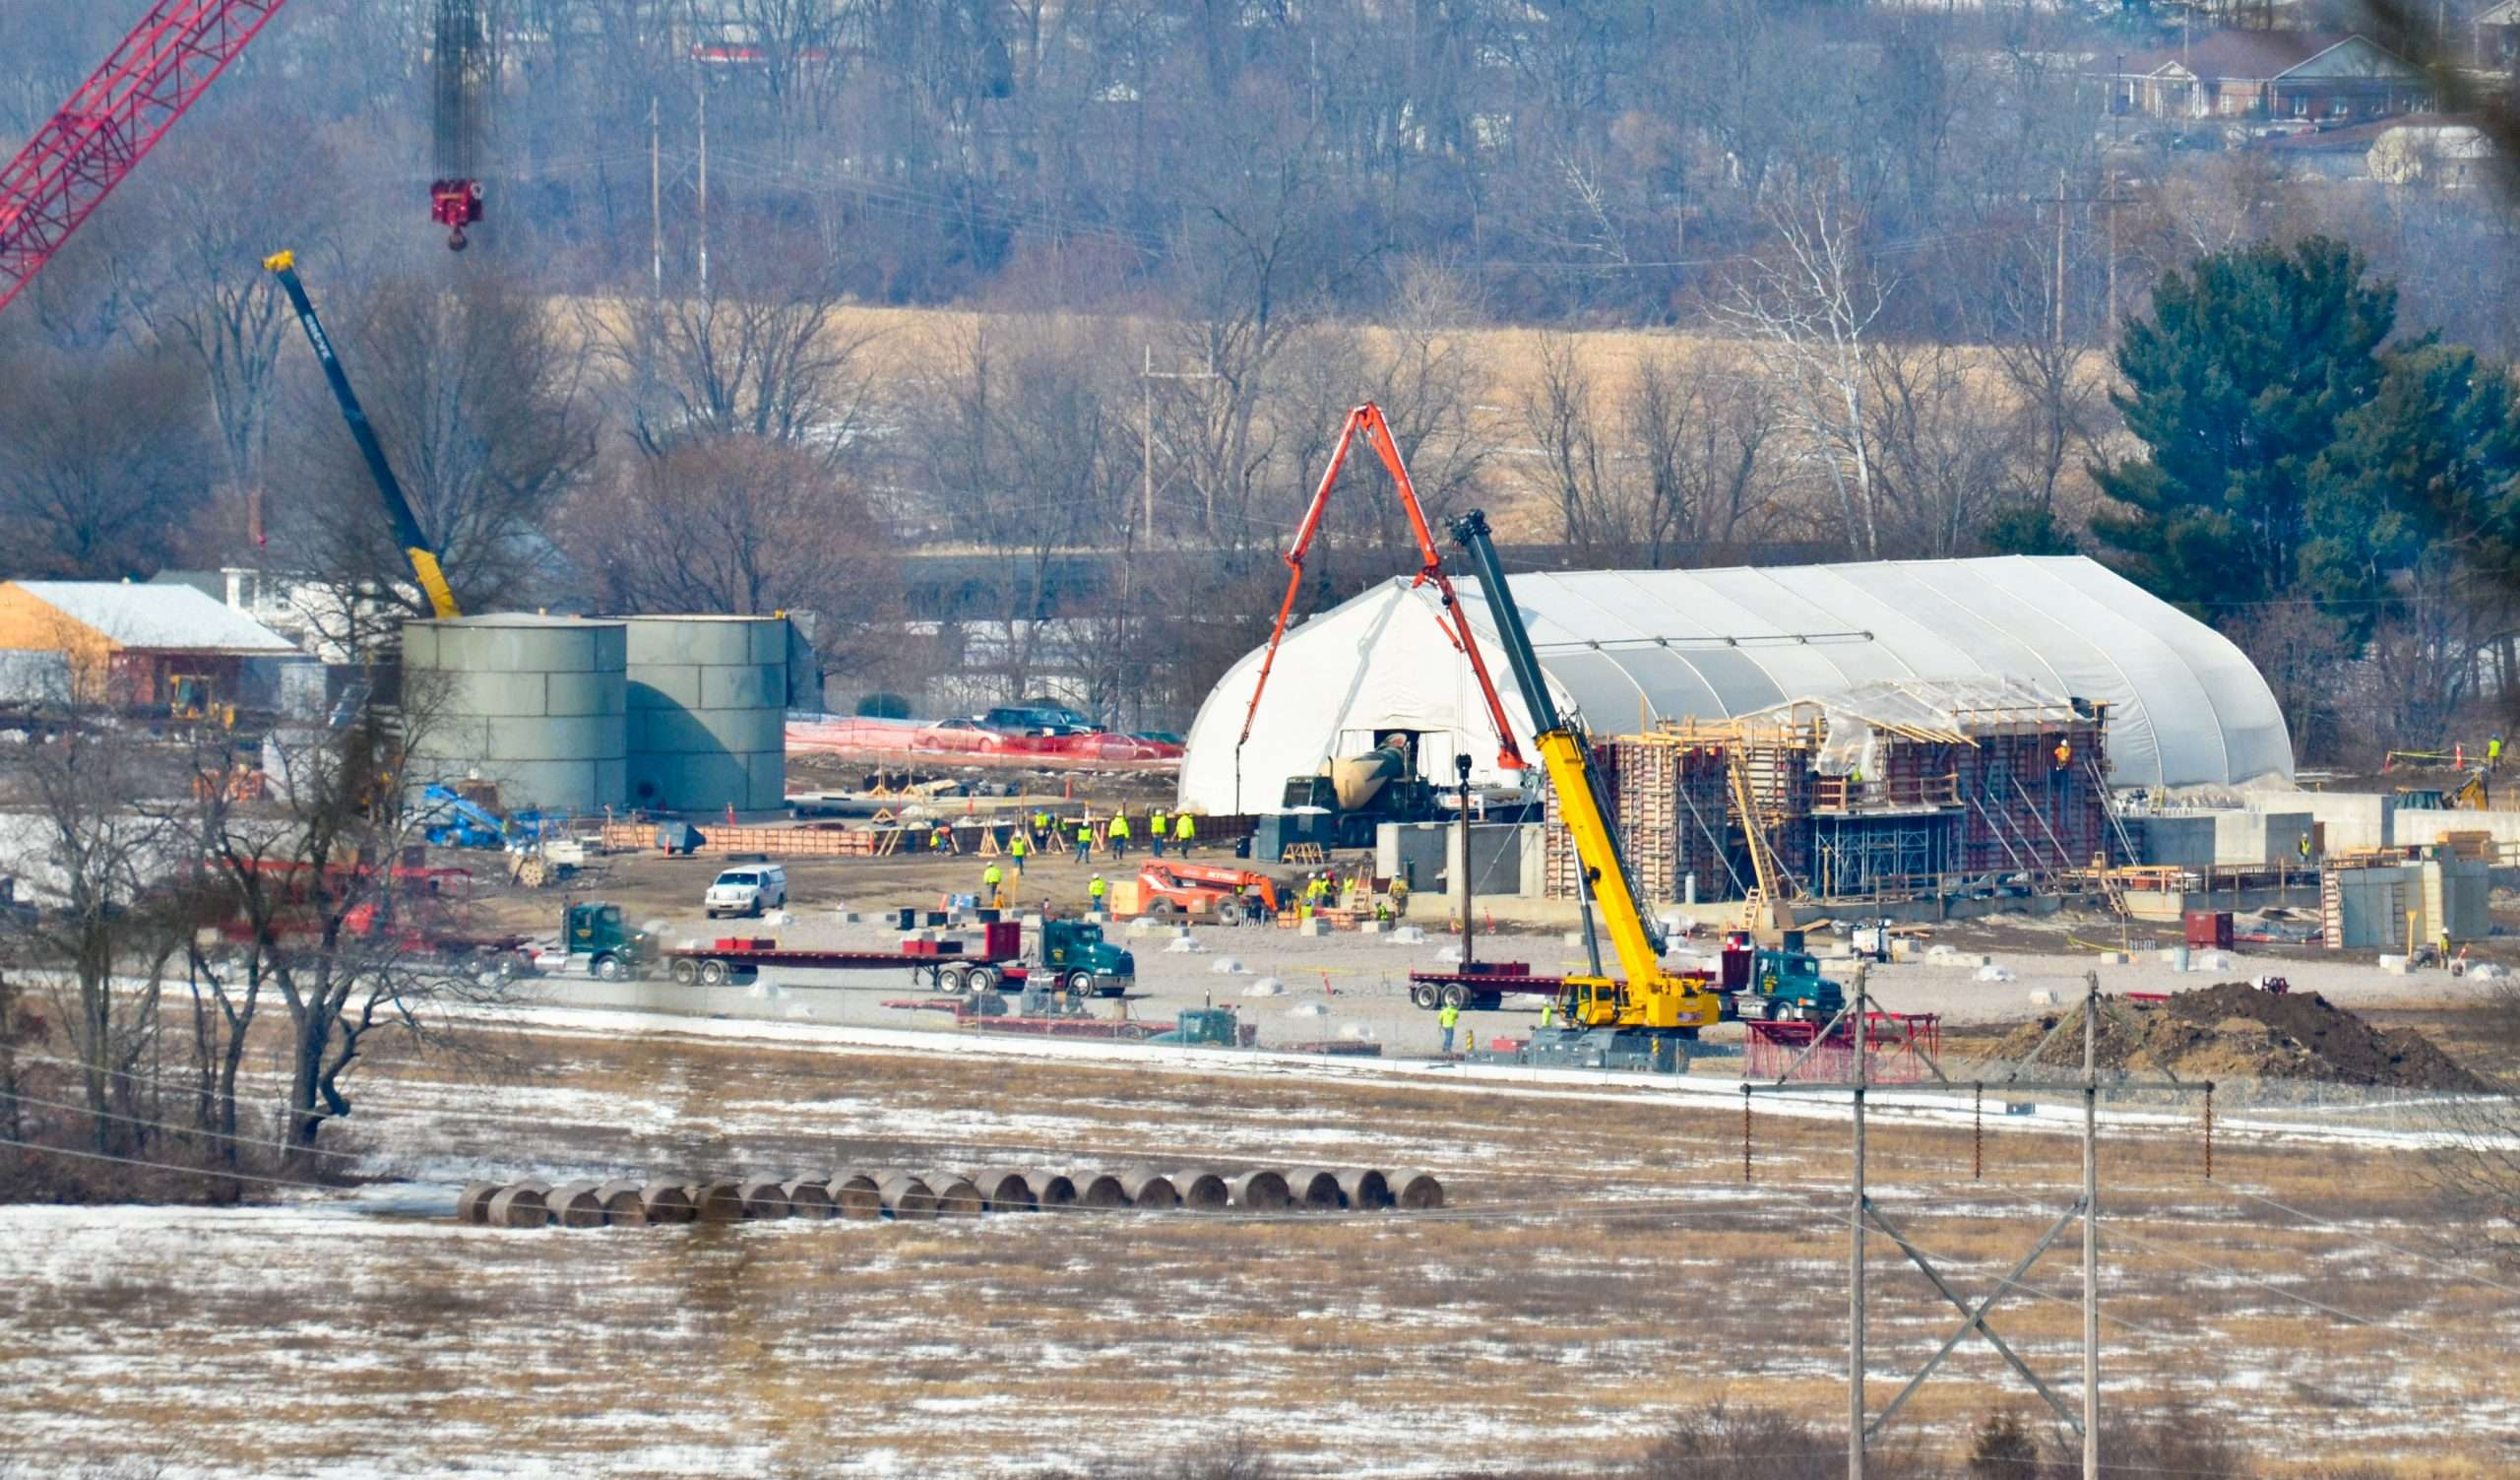 Remediation Structures Help Meet Cleanup Site Challenges